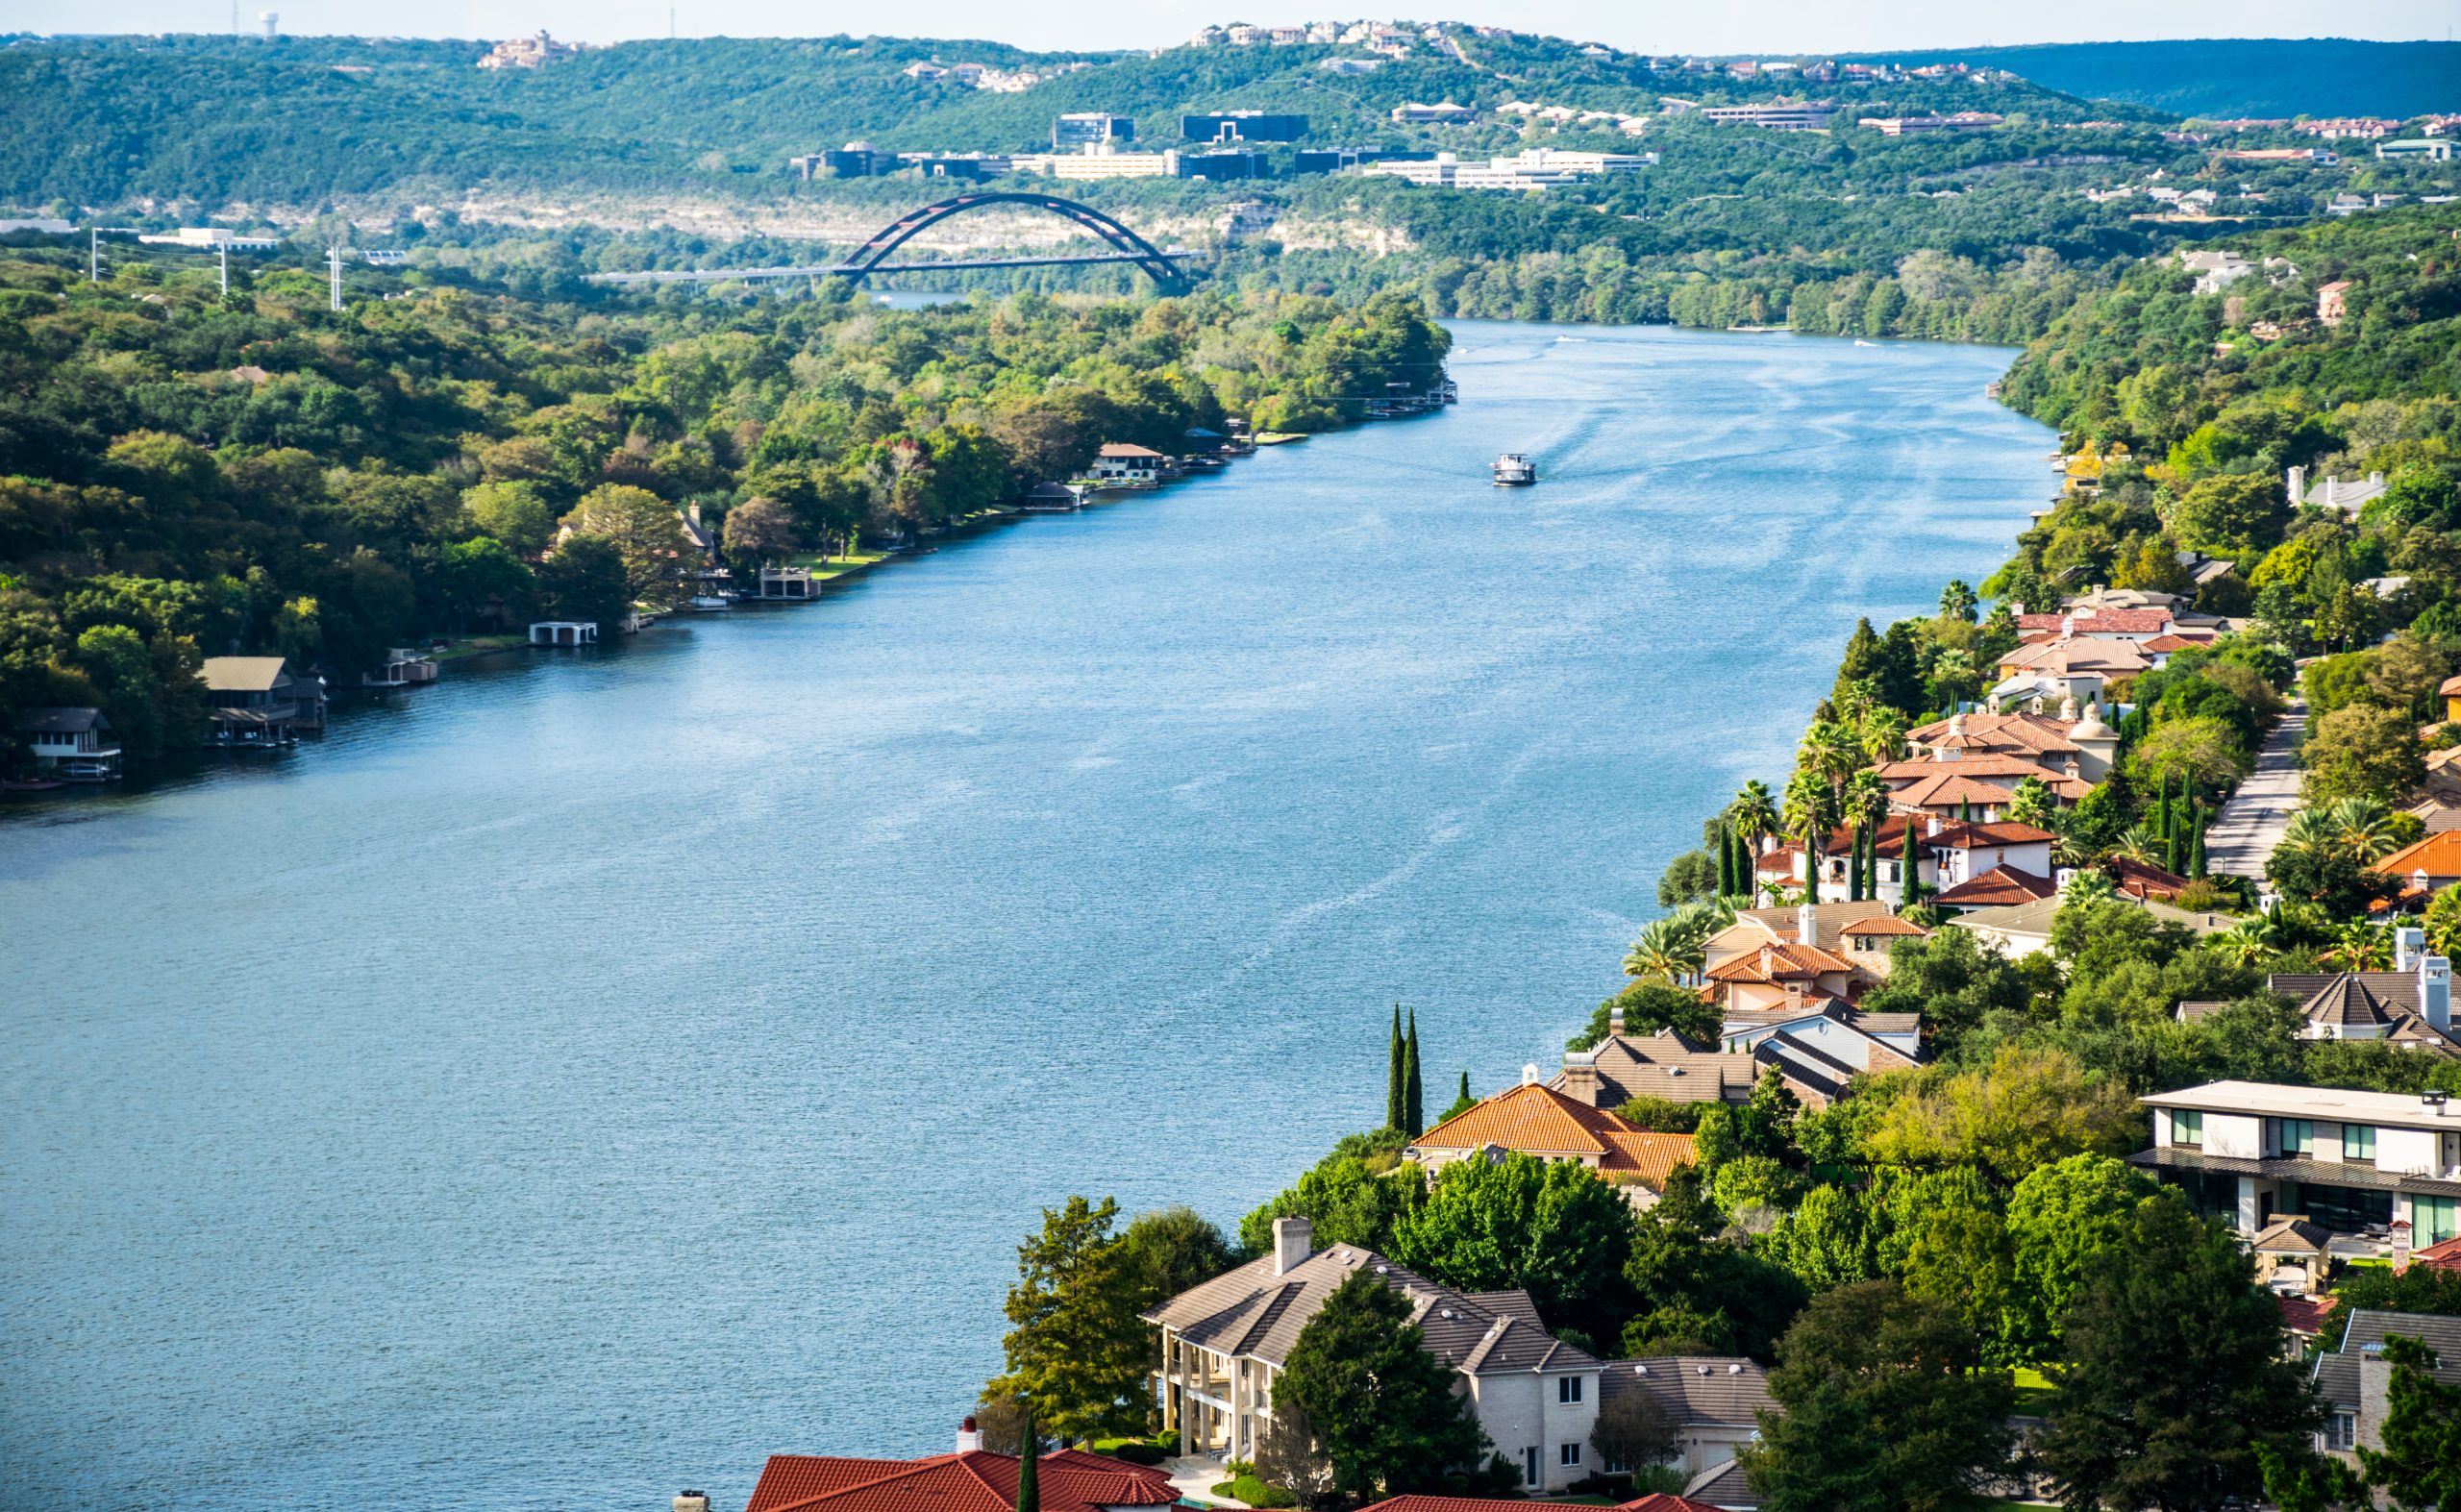 view of lake austin from above, one of the best lakes in austin texas